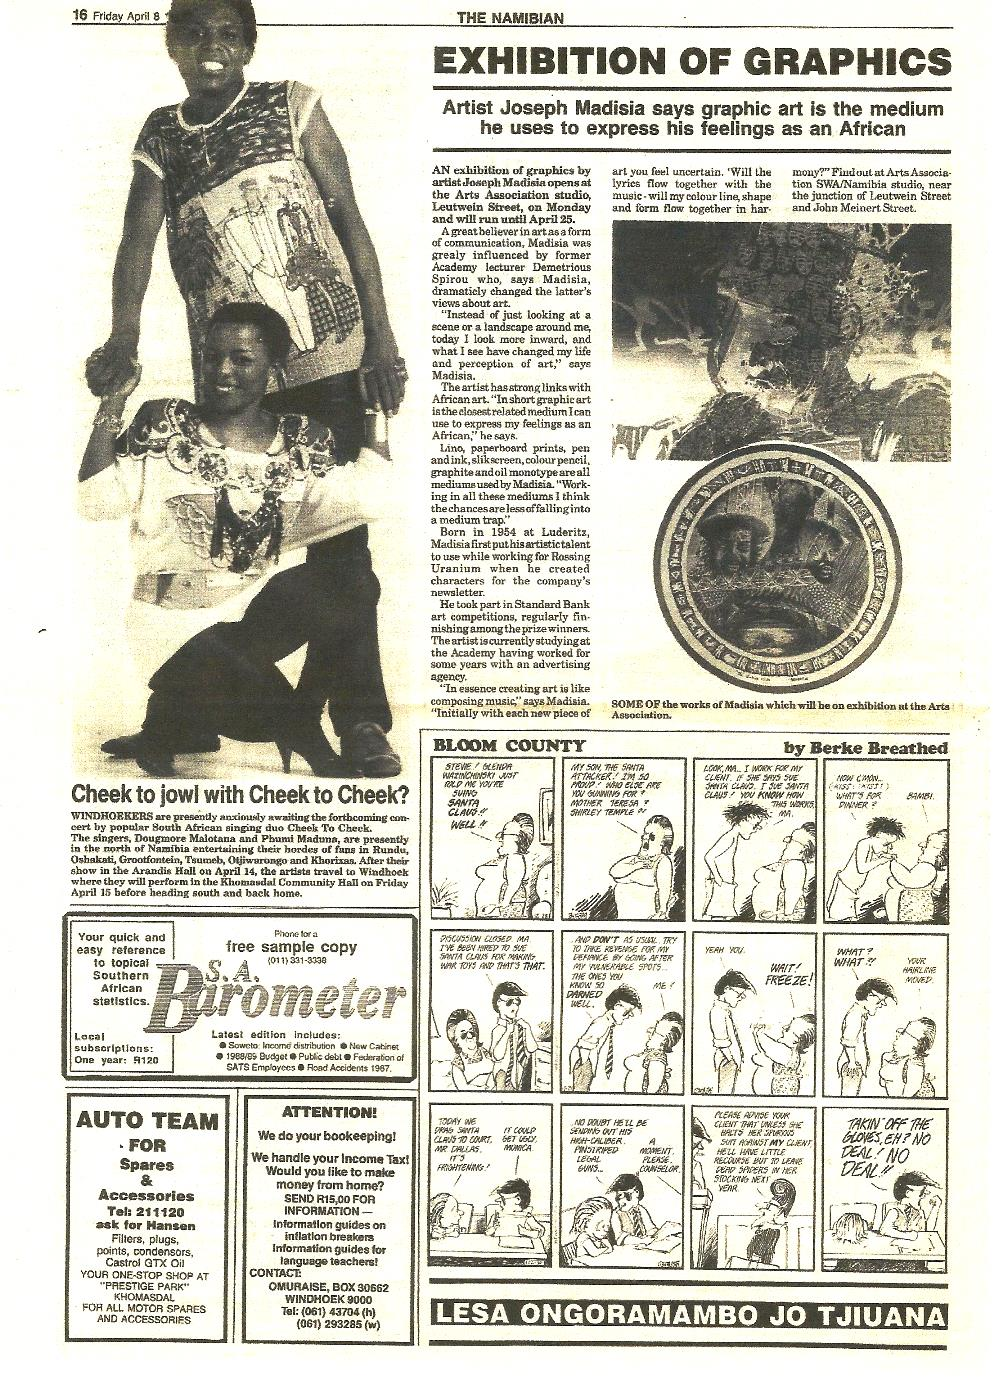 Namibian Newspaper No130 of 16 April 1988 pg.16.